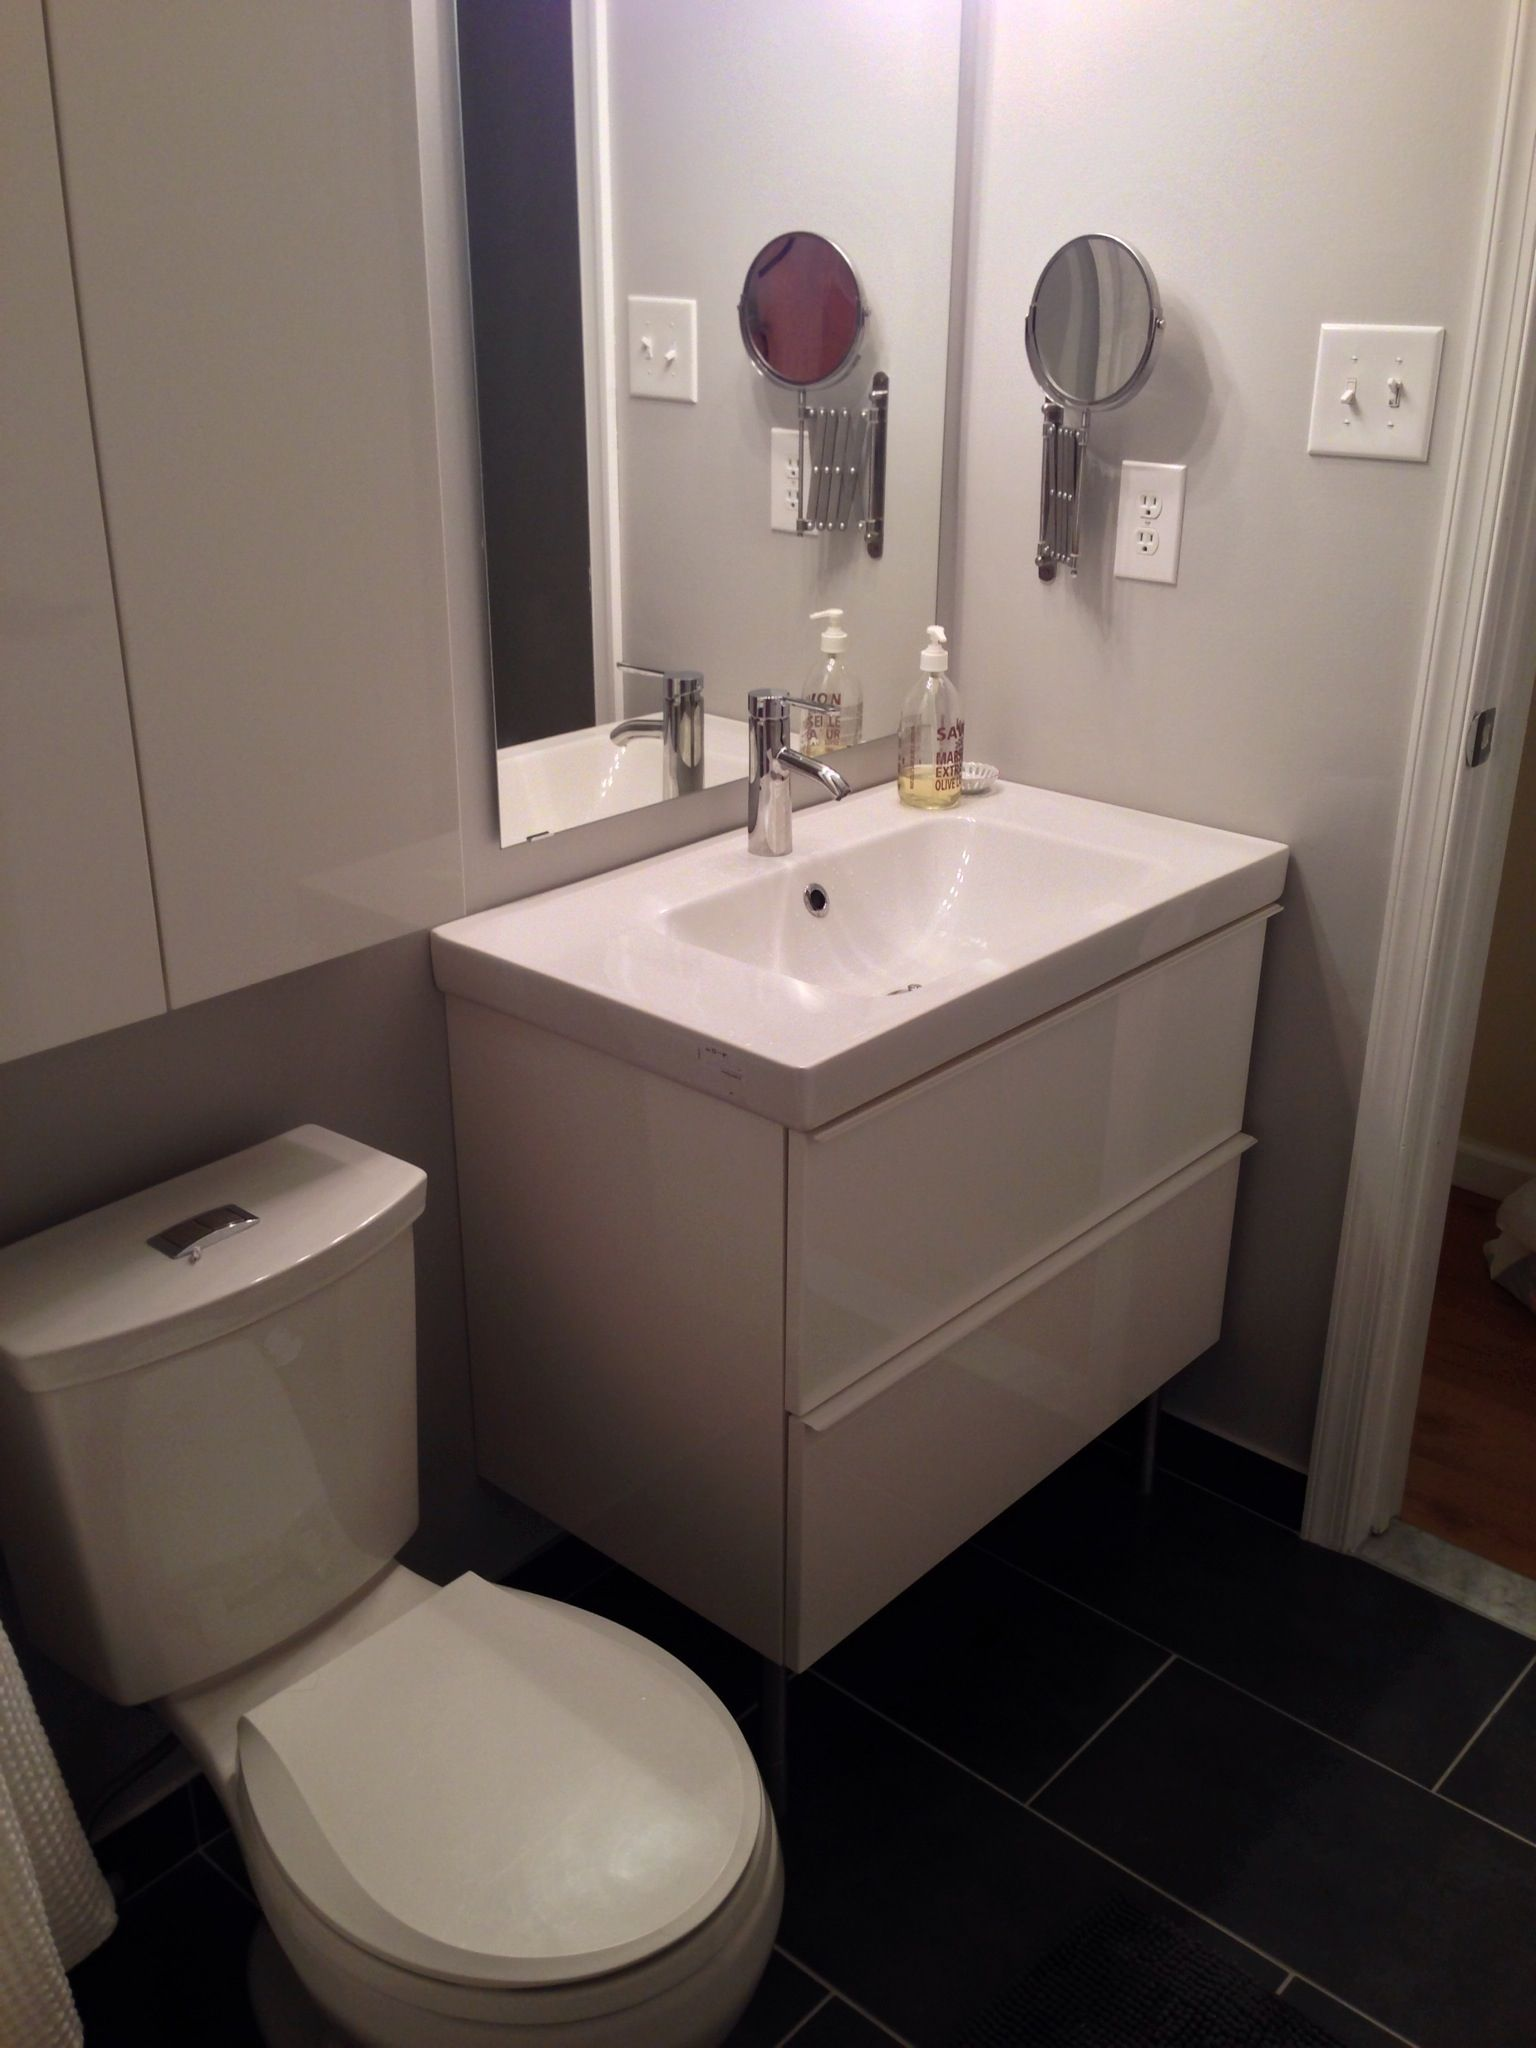 Inspiring IKEA Bathroom Vanity With Sink Ideas Fascinating White - Bathroom vanities at ikea